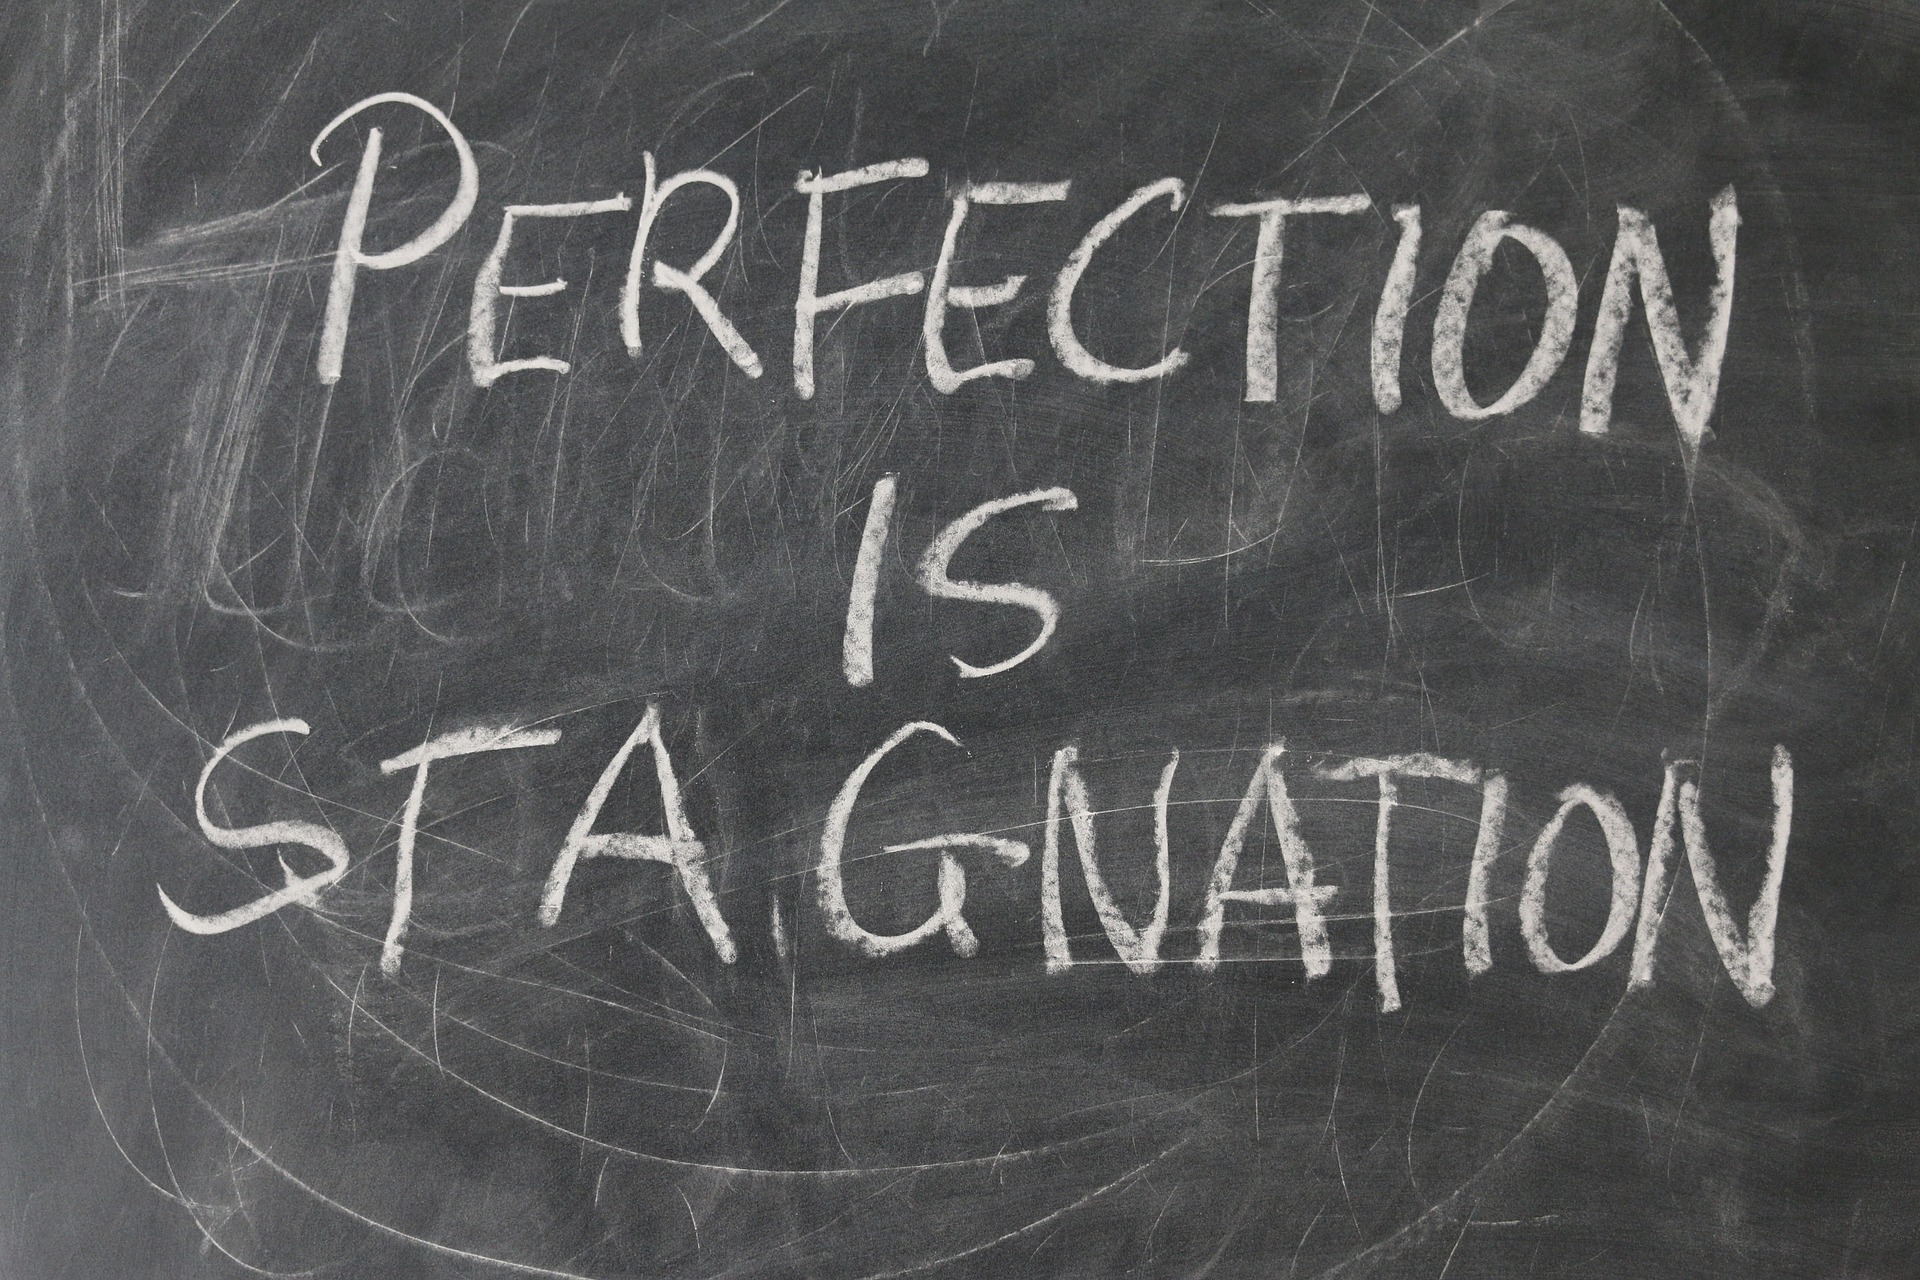 Developers who aim to be perfectionist become stagnated